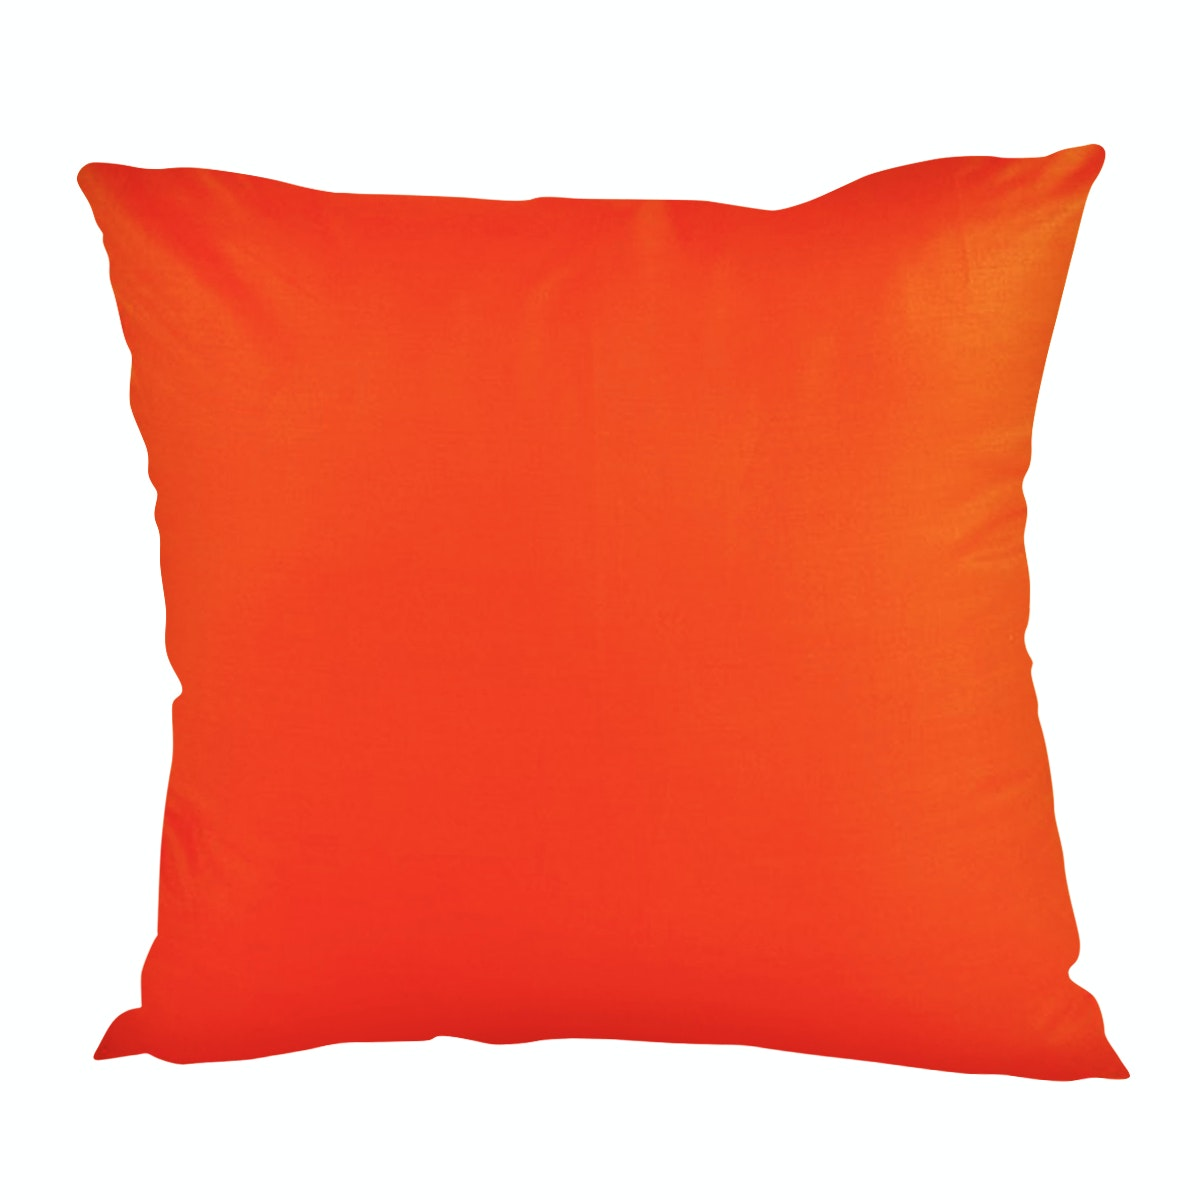 Glerry Home Decor Deep Orange Cushion 40x40cm